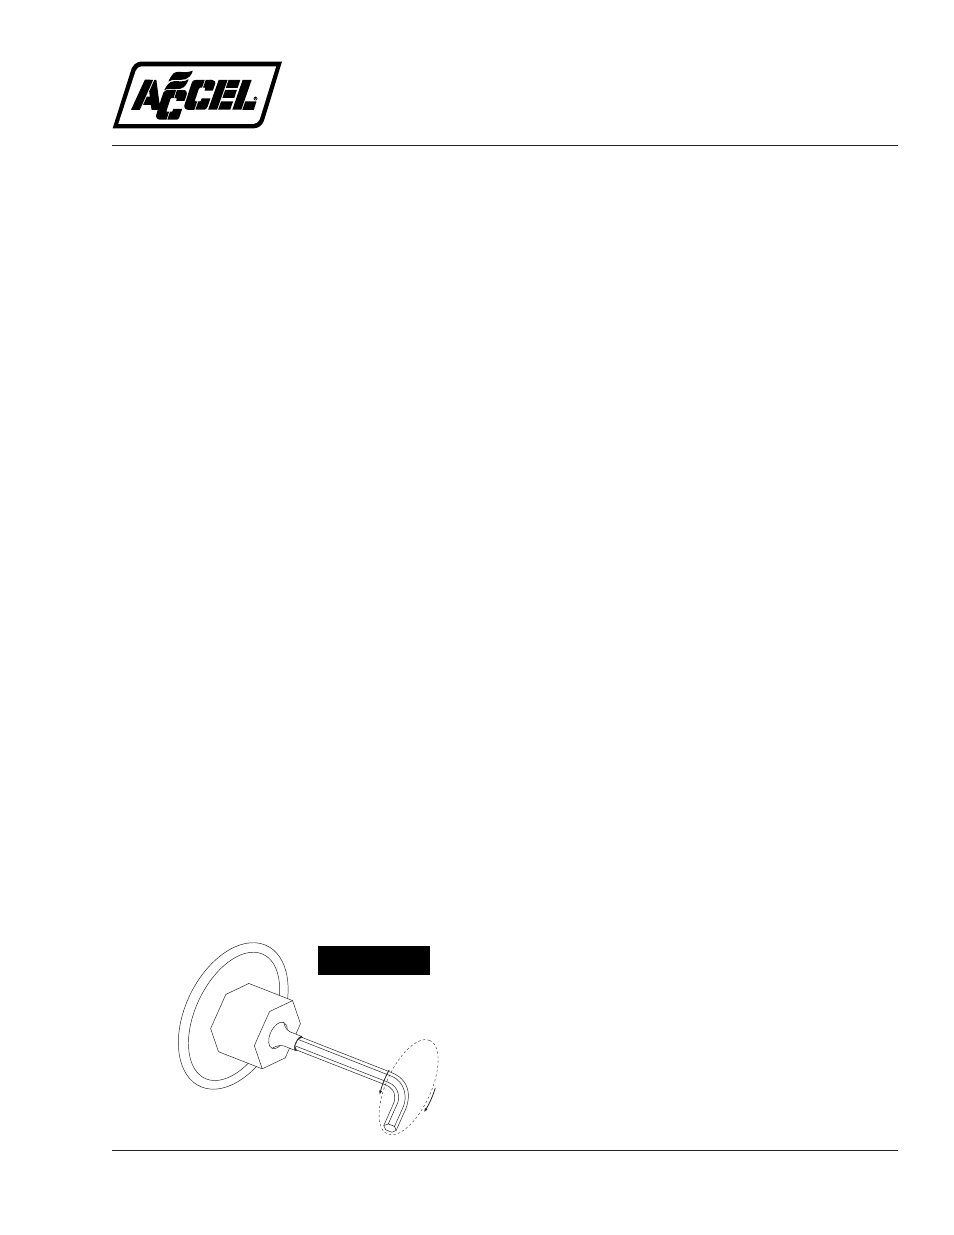 Accel Distributor Wiring Diagram 32 Images Hei Mallory Ignition Magnetic Breakerless Distributors 71000 Page1